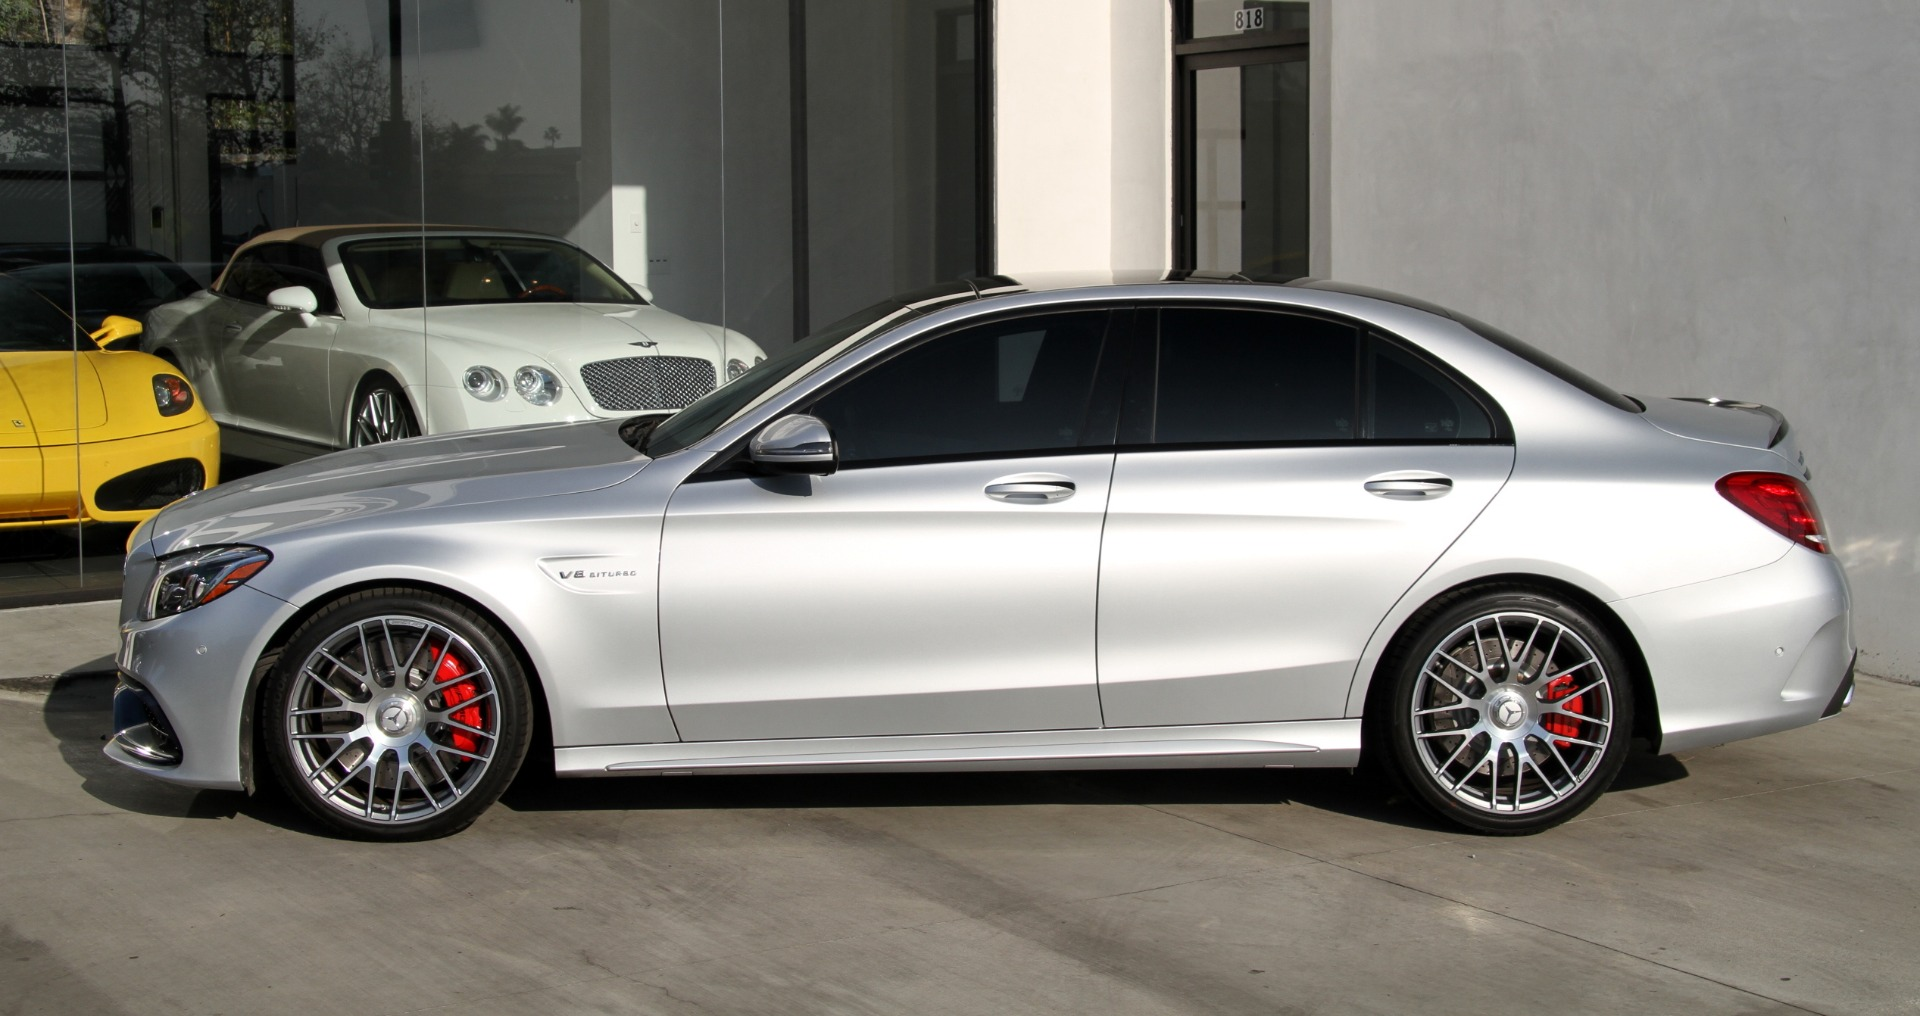 2016 mercedes benz c63 s amg stock 6004 for sale near for General motors dealers near me